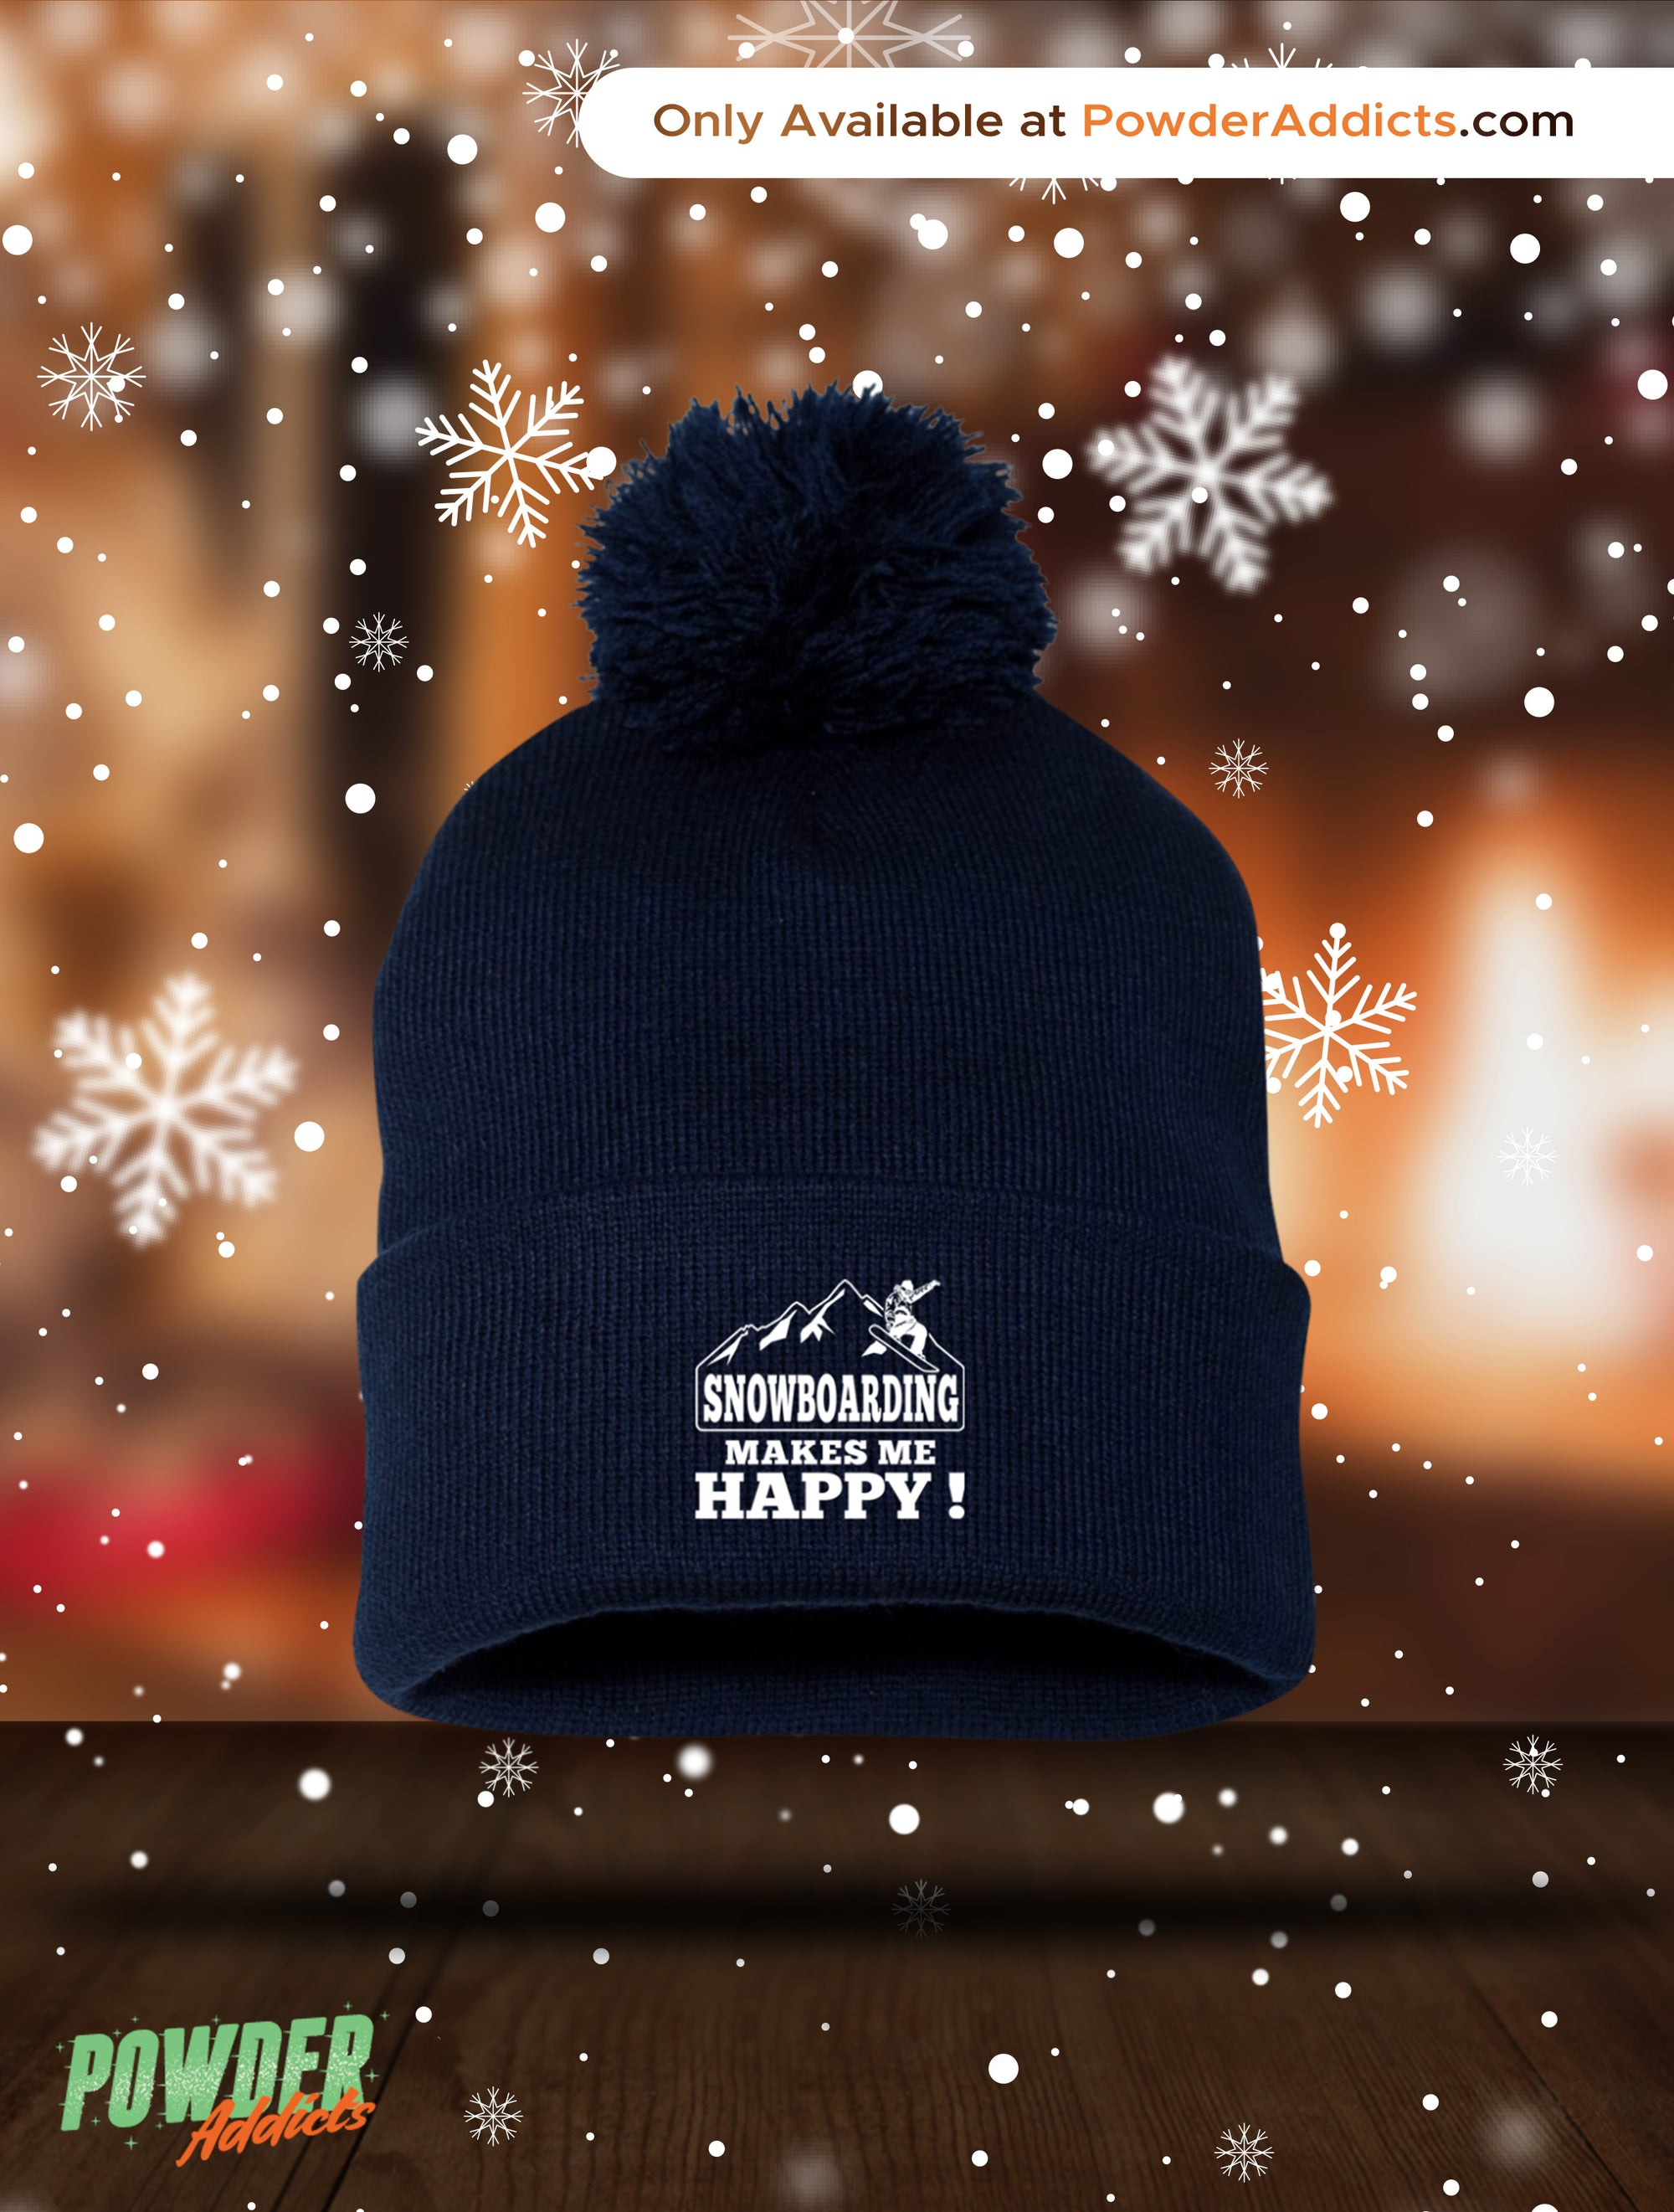 Snowboarding Makes Me Happy Pom Pom Knit Cap - Powderaddicts